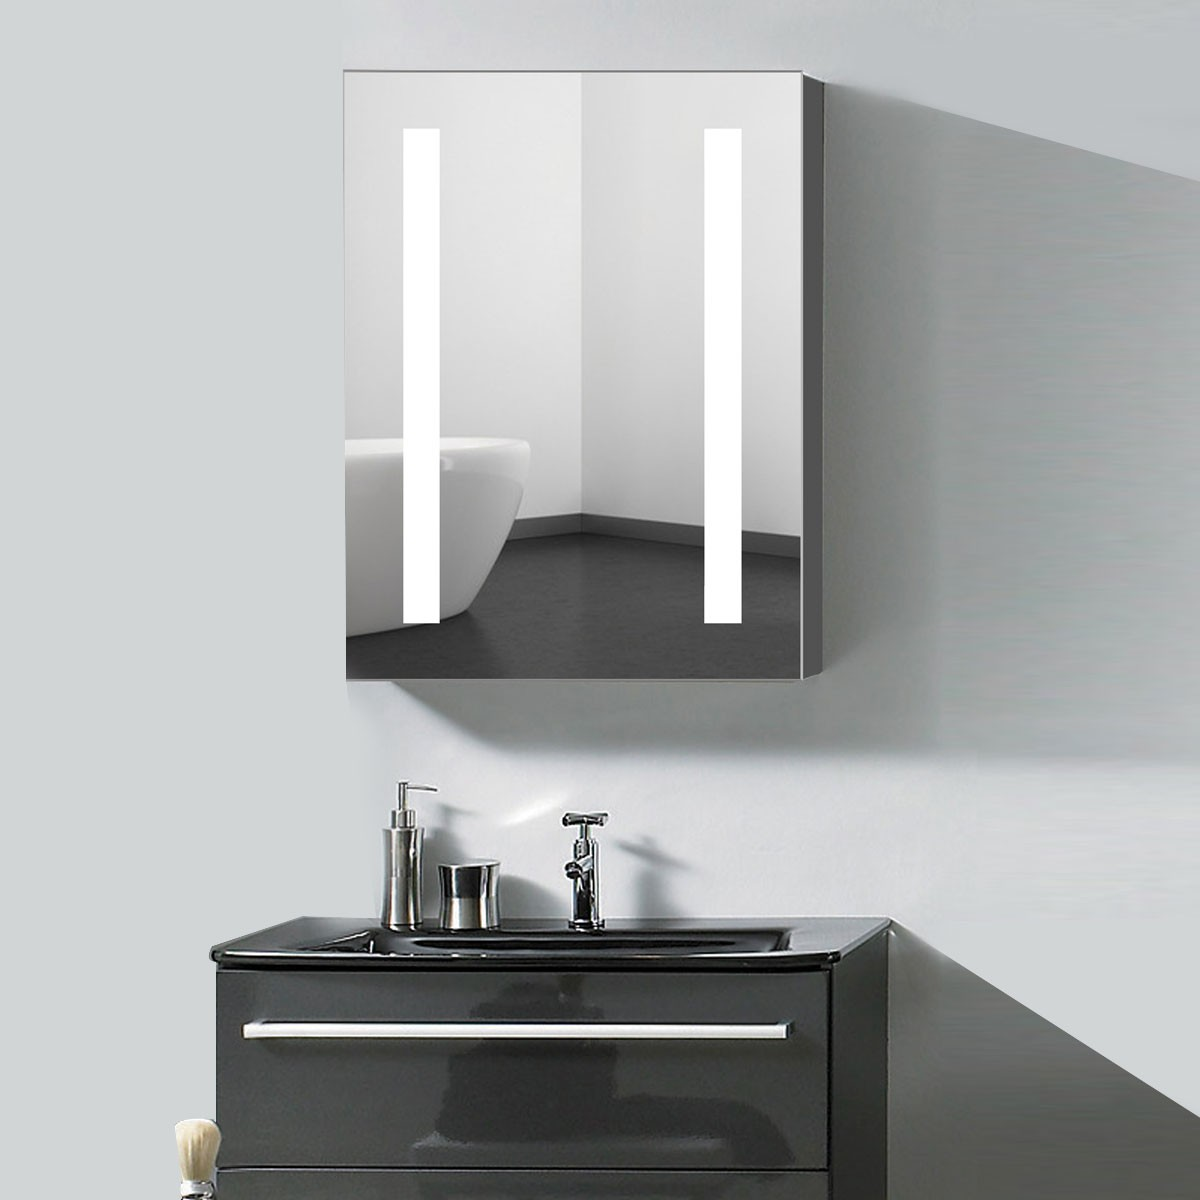 24 x 32  In. Vertical LED Mirror Cabinet with Infrared Sensor (DK-OD-NS36-G)